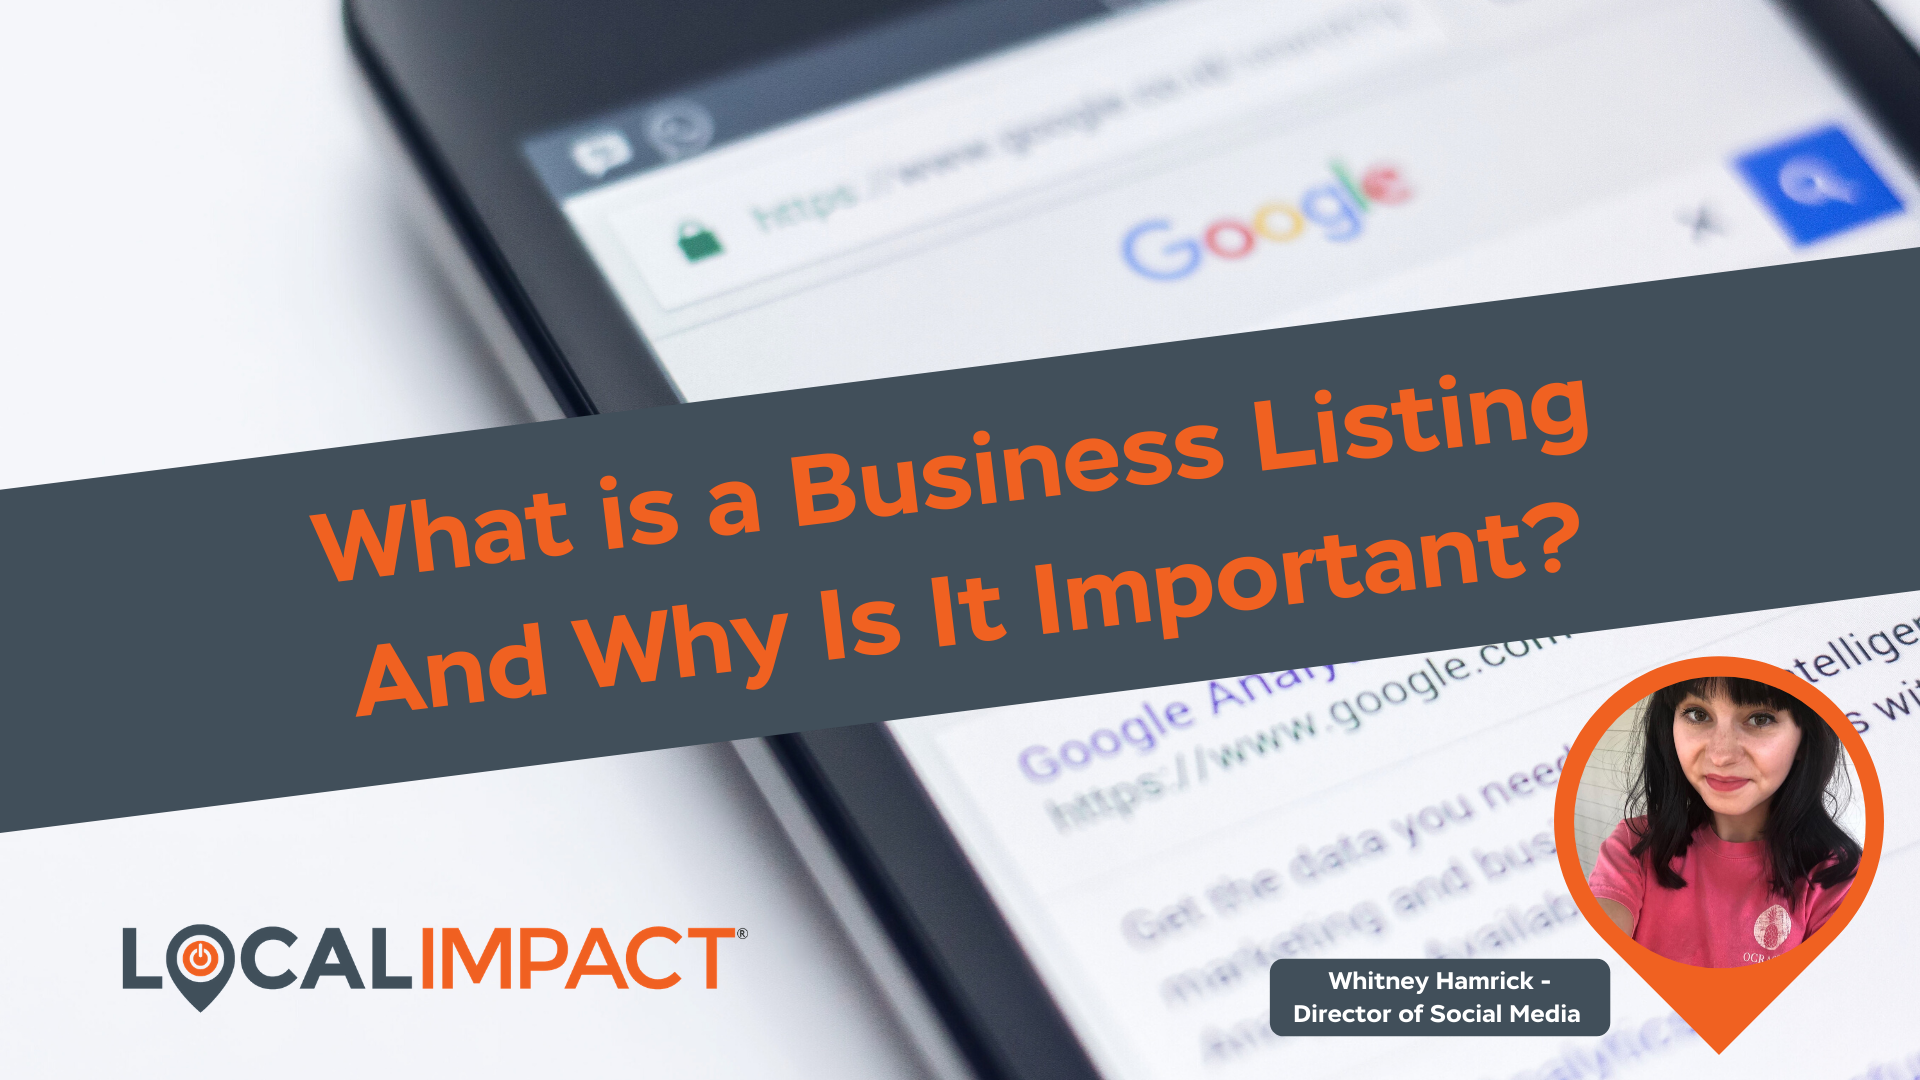 What is a Business Listing and Why is it Important? - Local Impact Blog